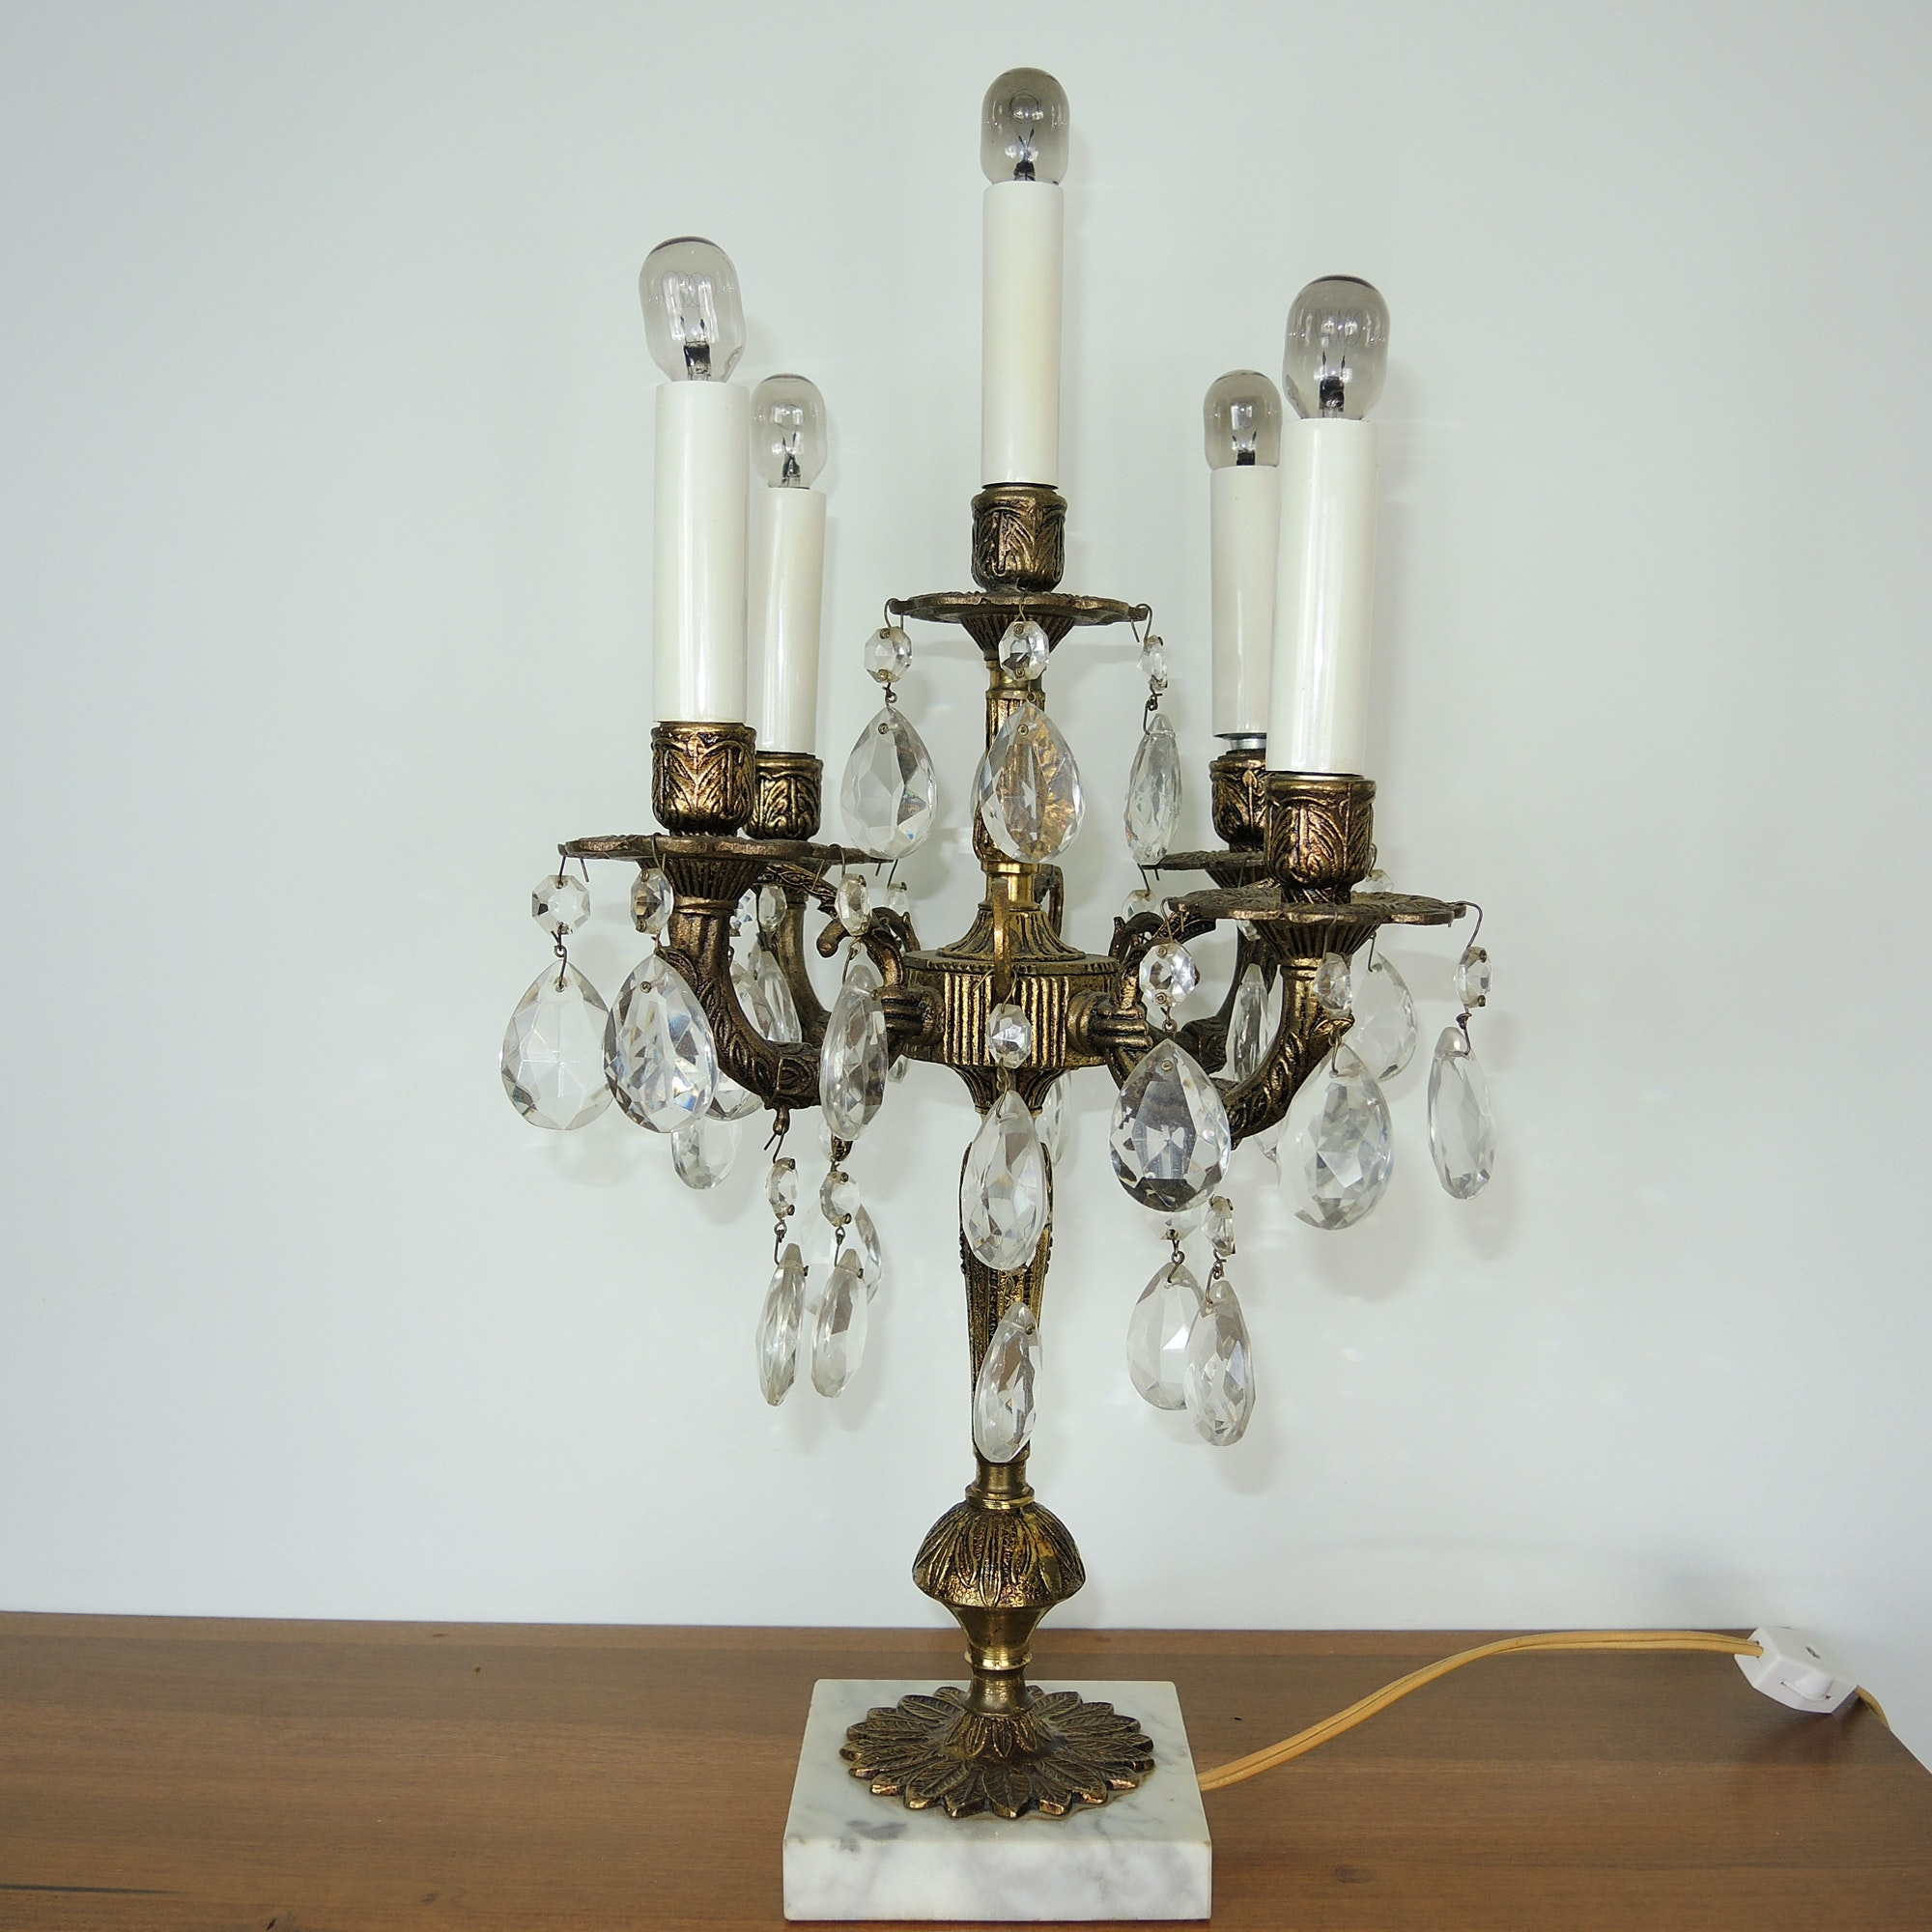 Antique Electric Table Lamp